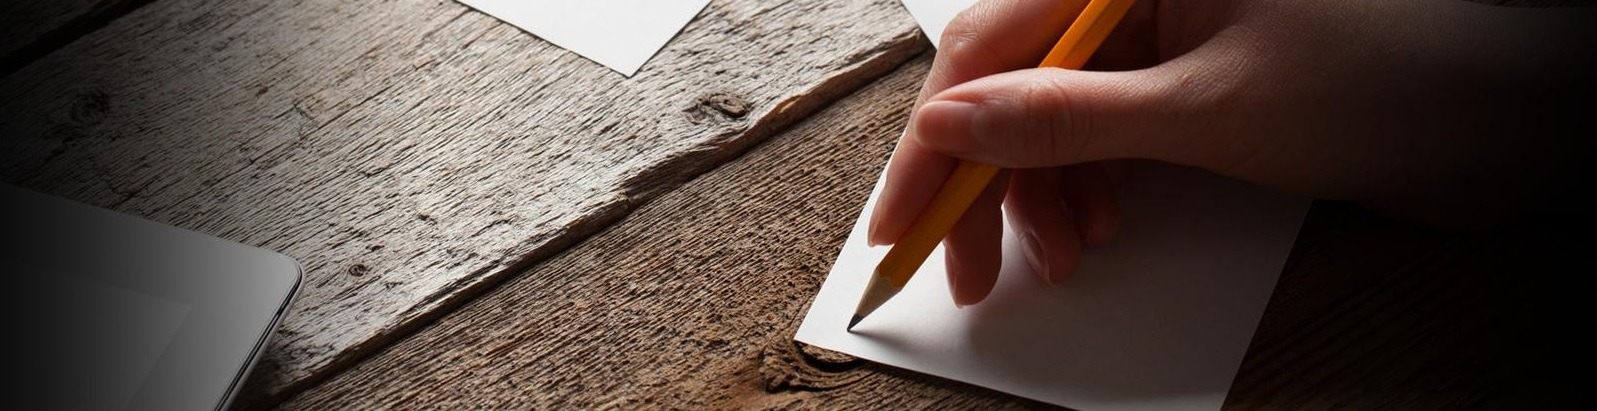 writing-a-condolence-note-1600x500